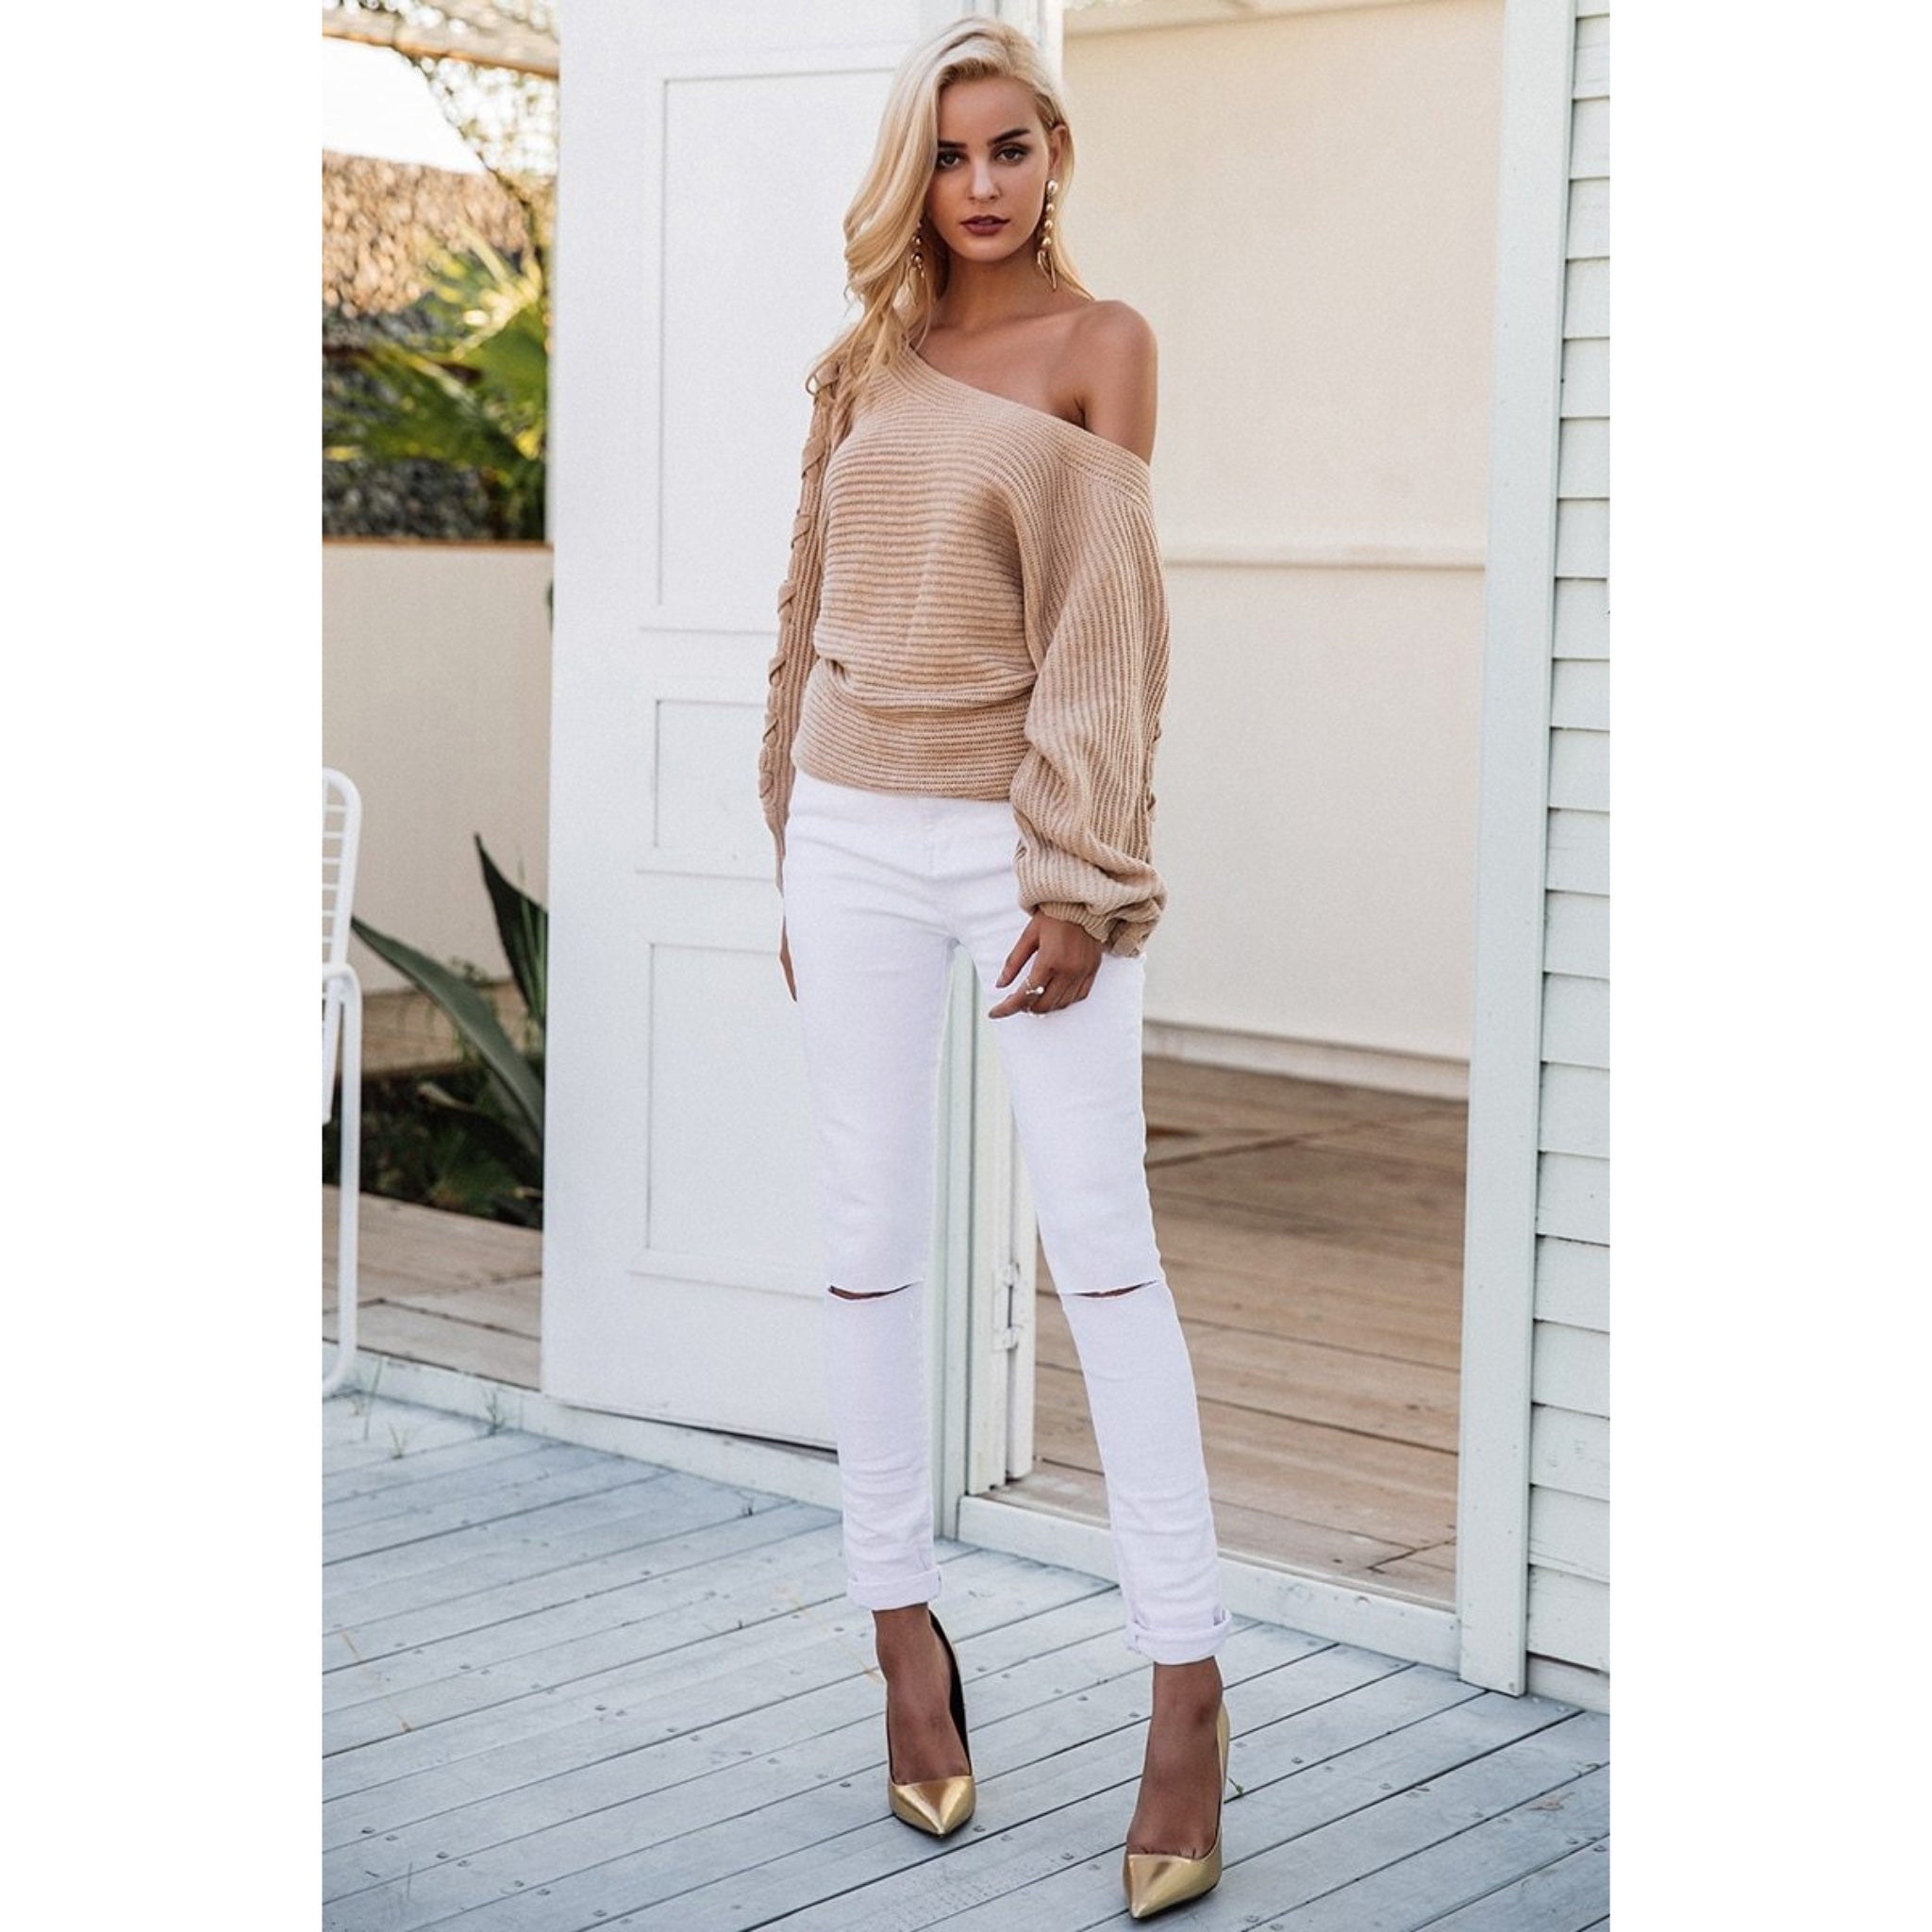 One Cold Shoulder Pullover Sweater With Batwing Sleeves and Lace Up the Arms